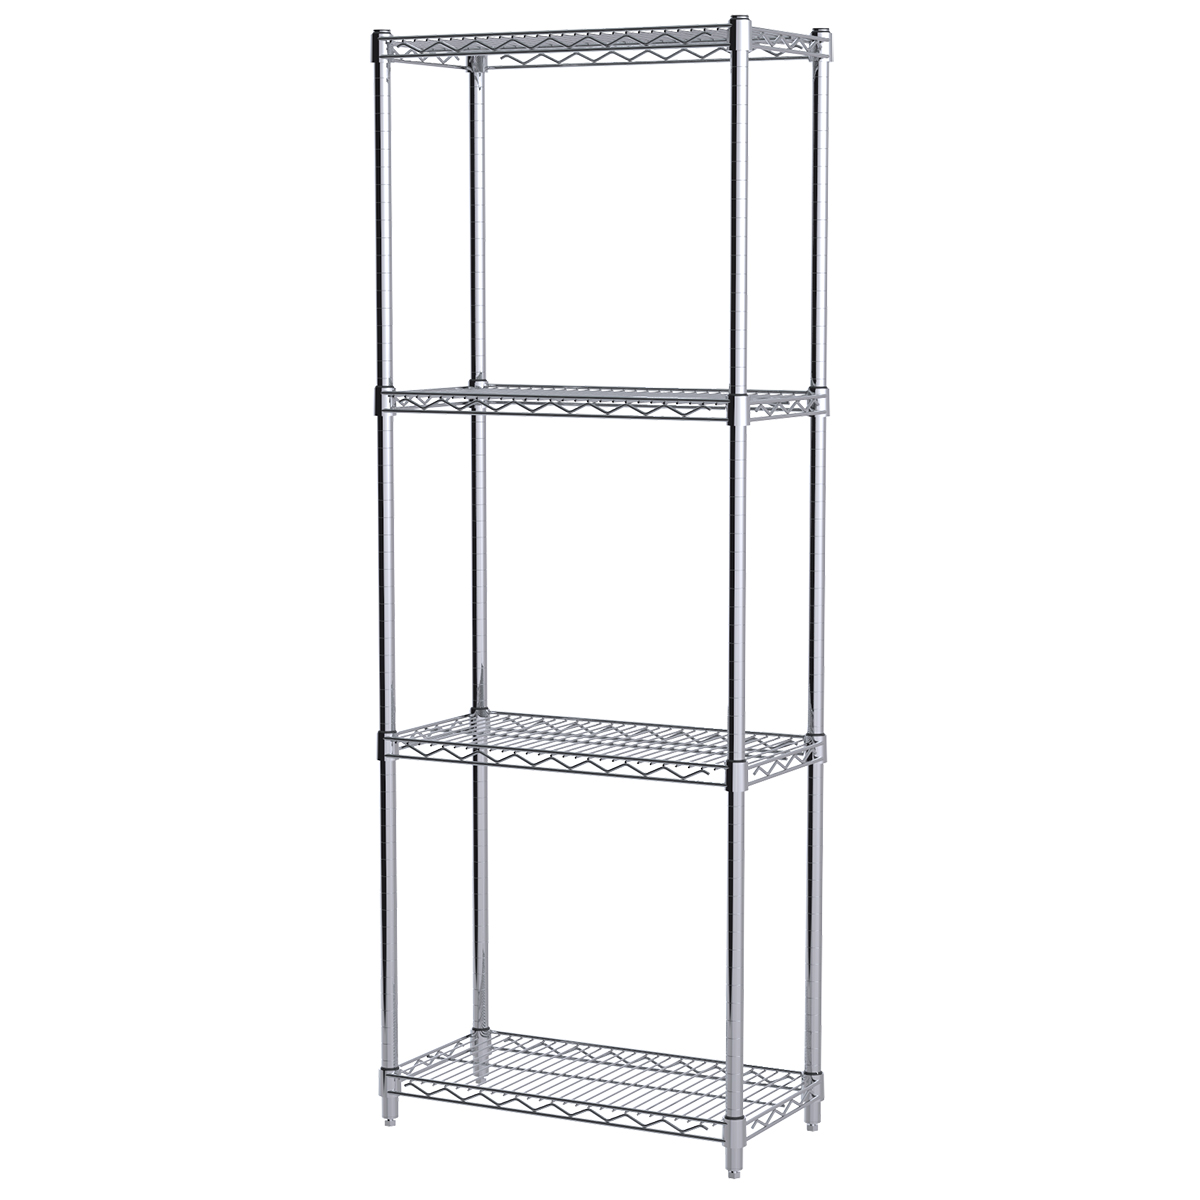 12x24x63, 4-Shelf Wire Shelving Starter Unit, Chrome.  This item sold in carton quantities of 1.